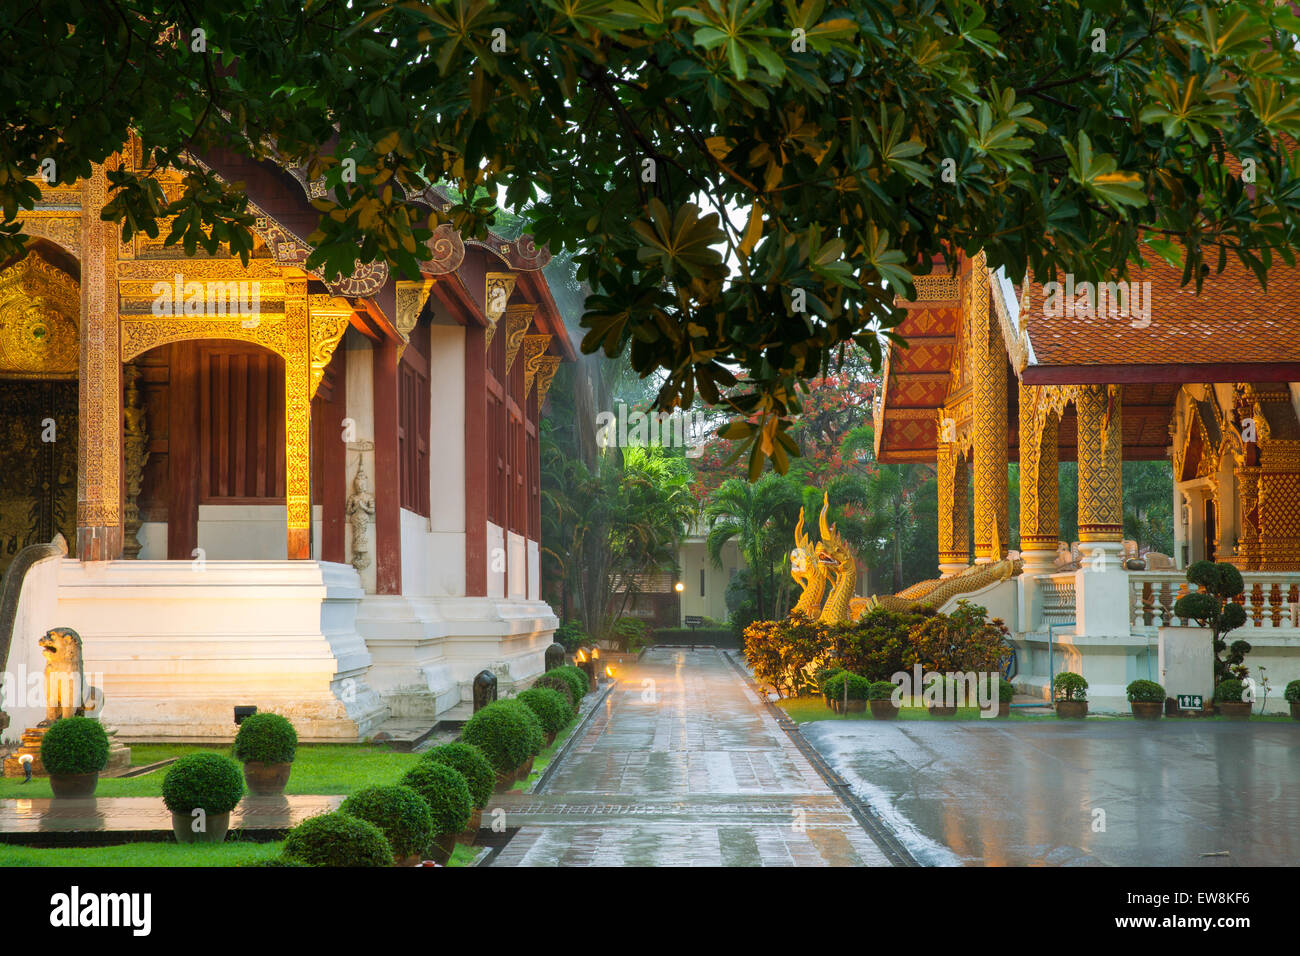 Wat Phra Singh Temple, Chiang Mai, Thailand. Chiang Mai's most revered temple. - Stock Image